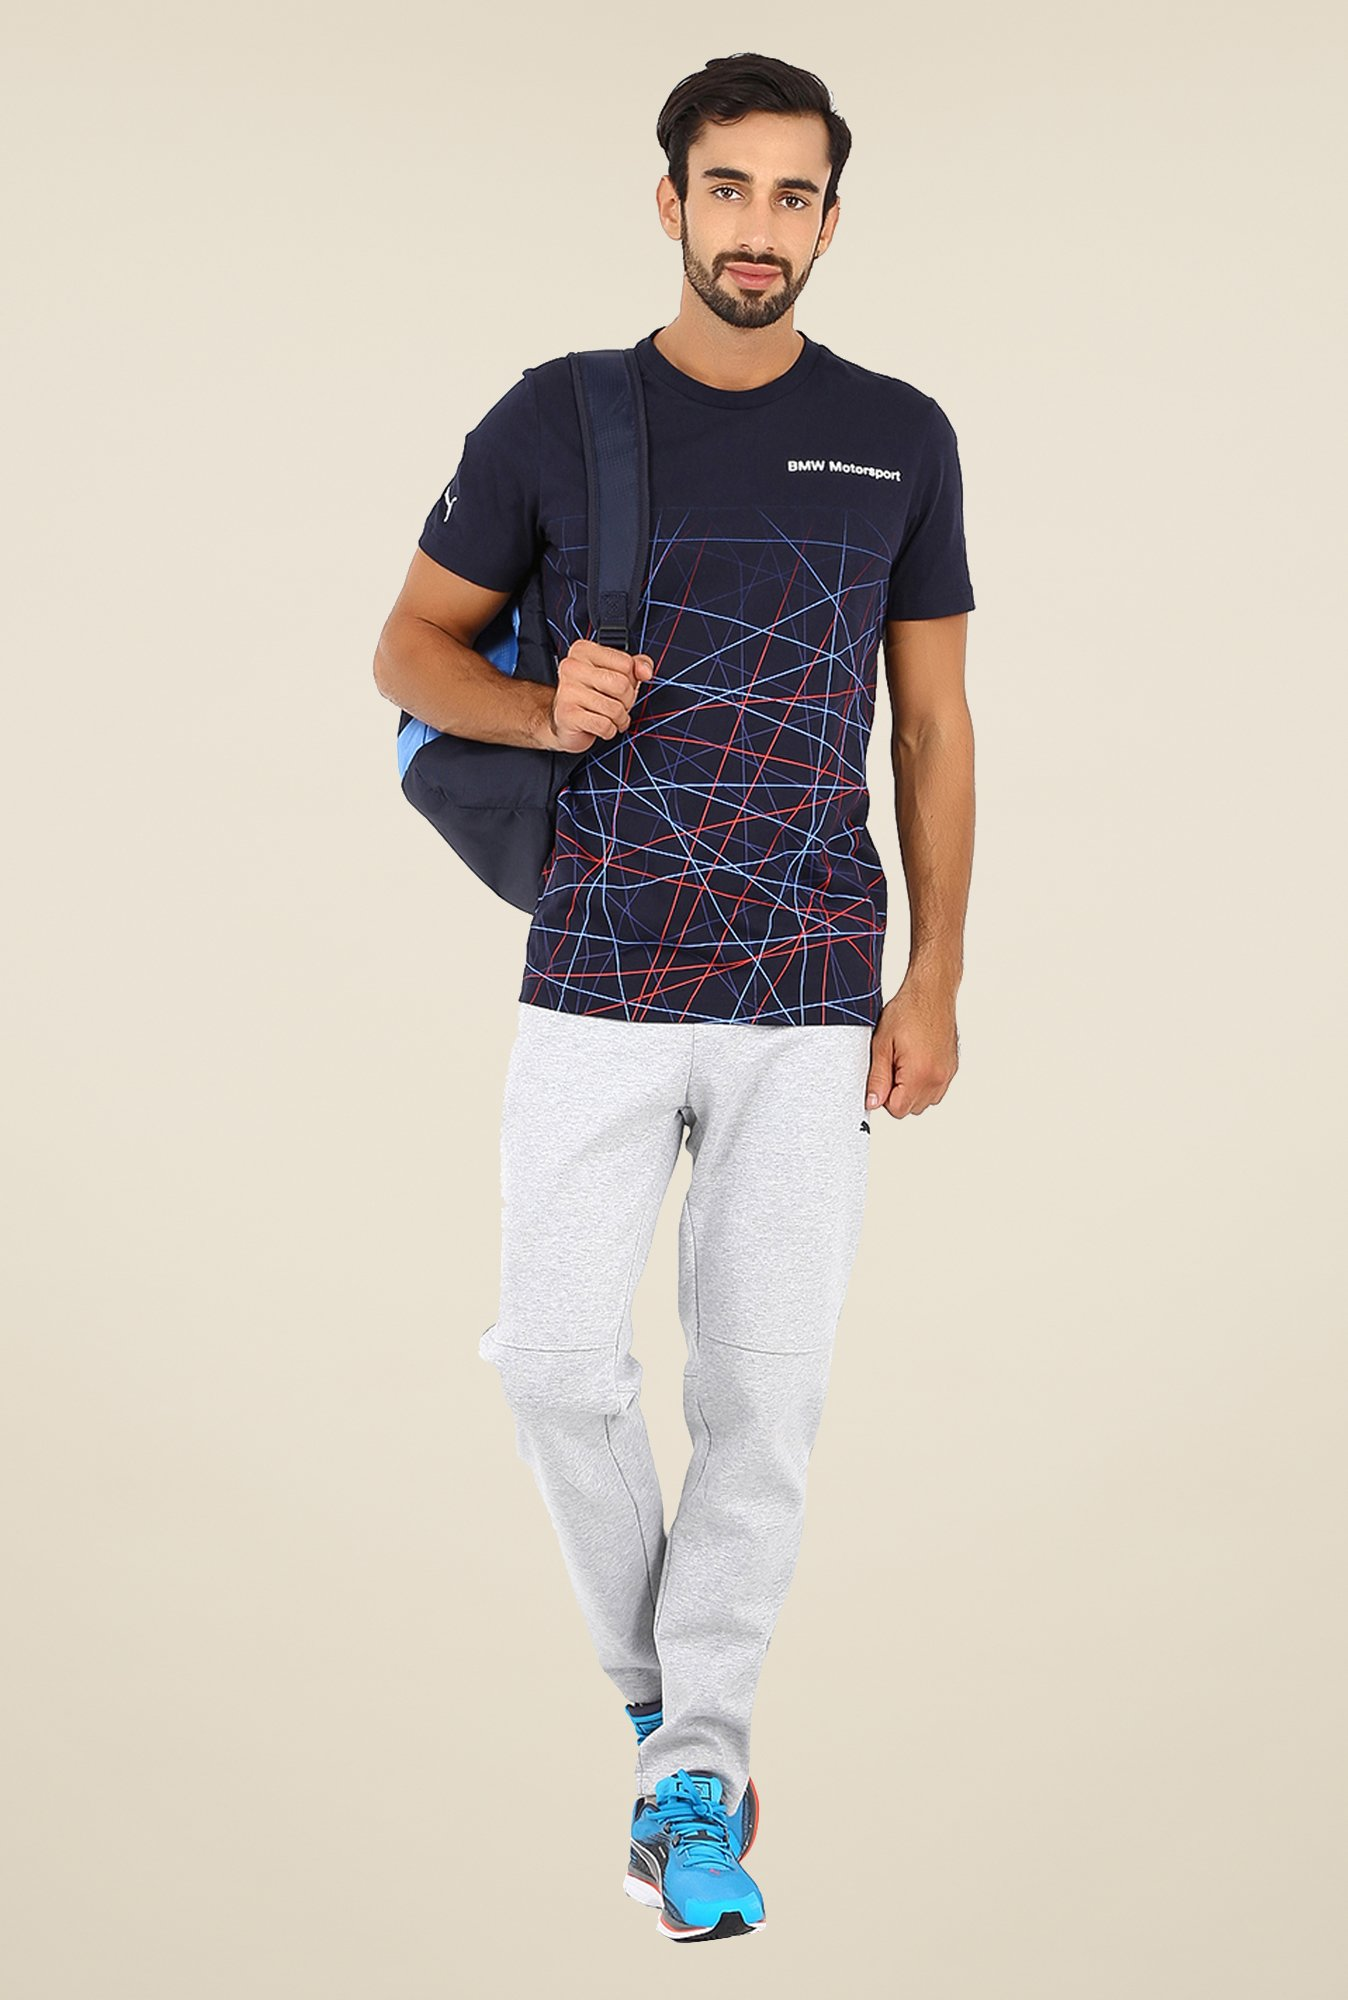 Puma Navy Graphic Print T Shirt